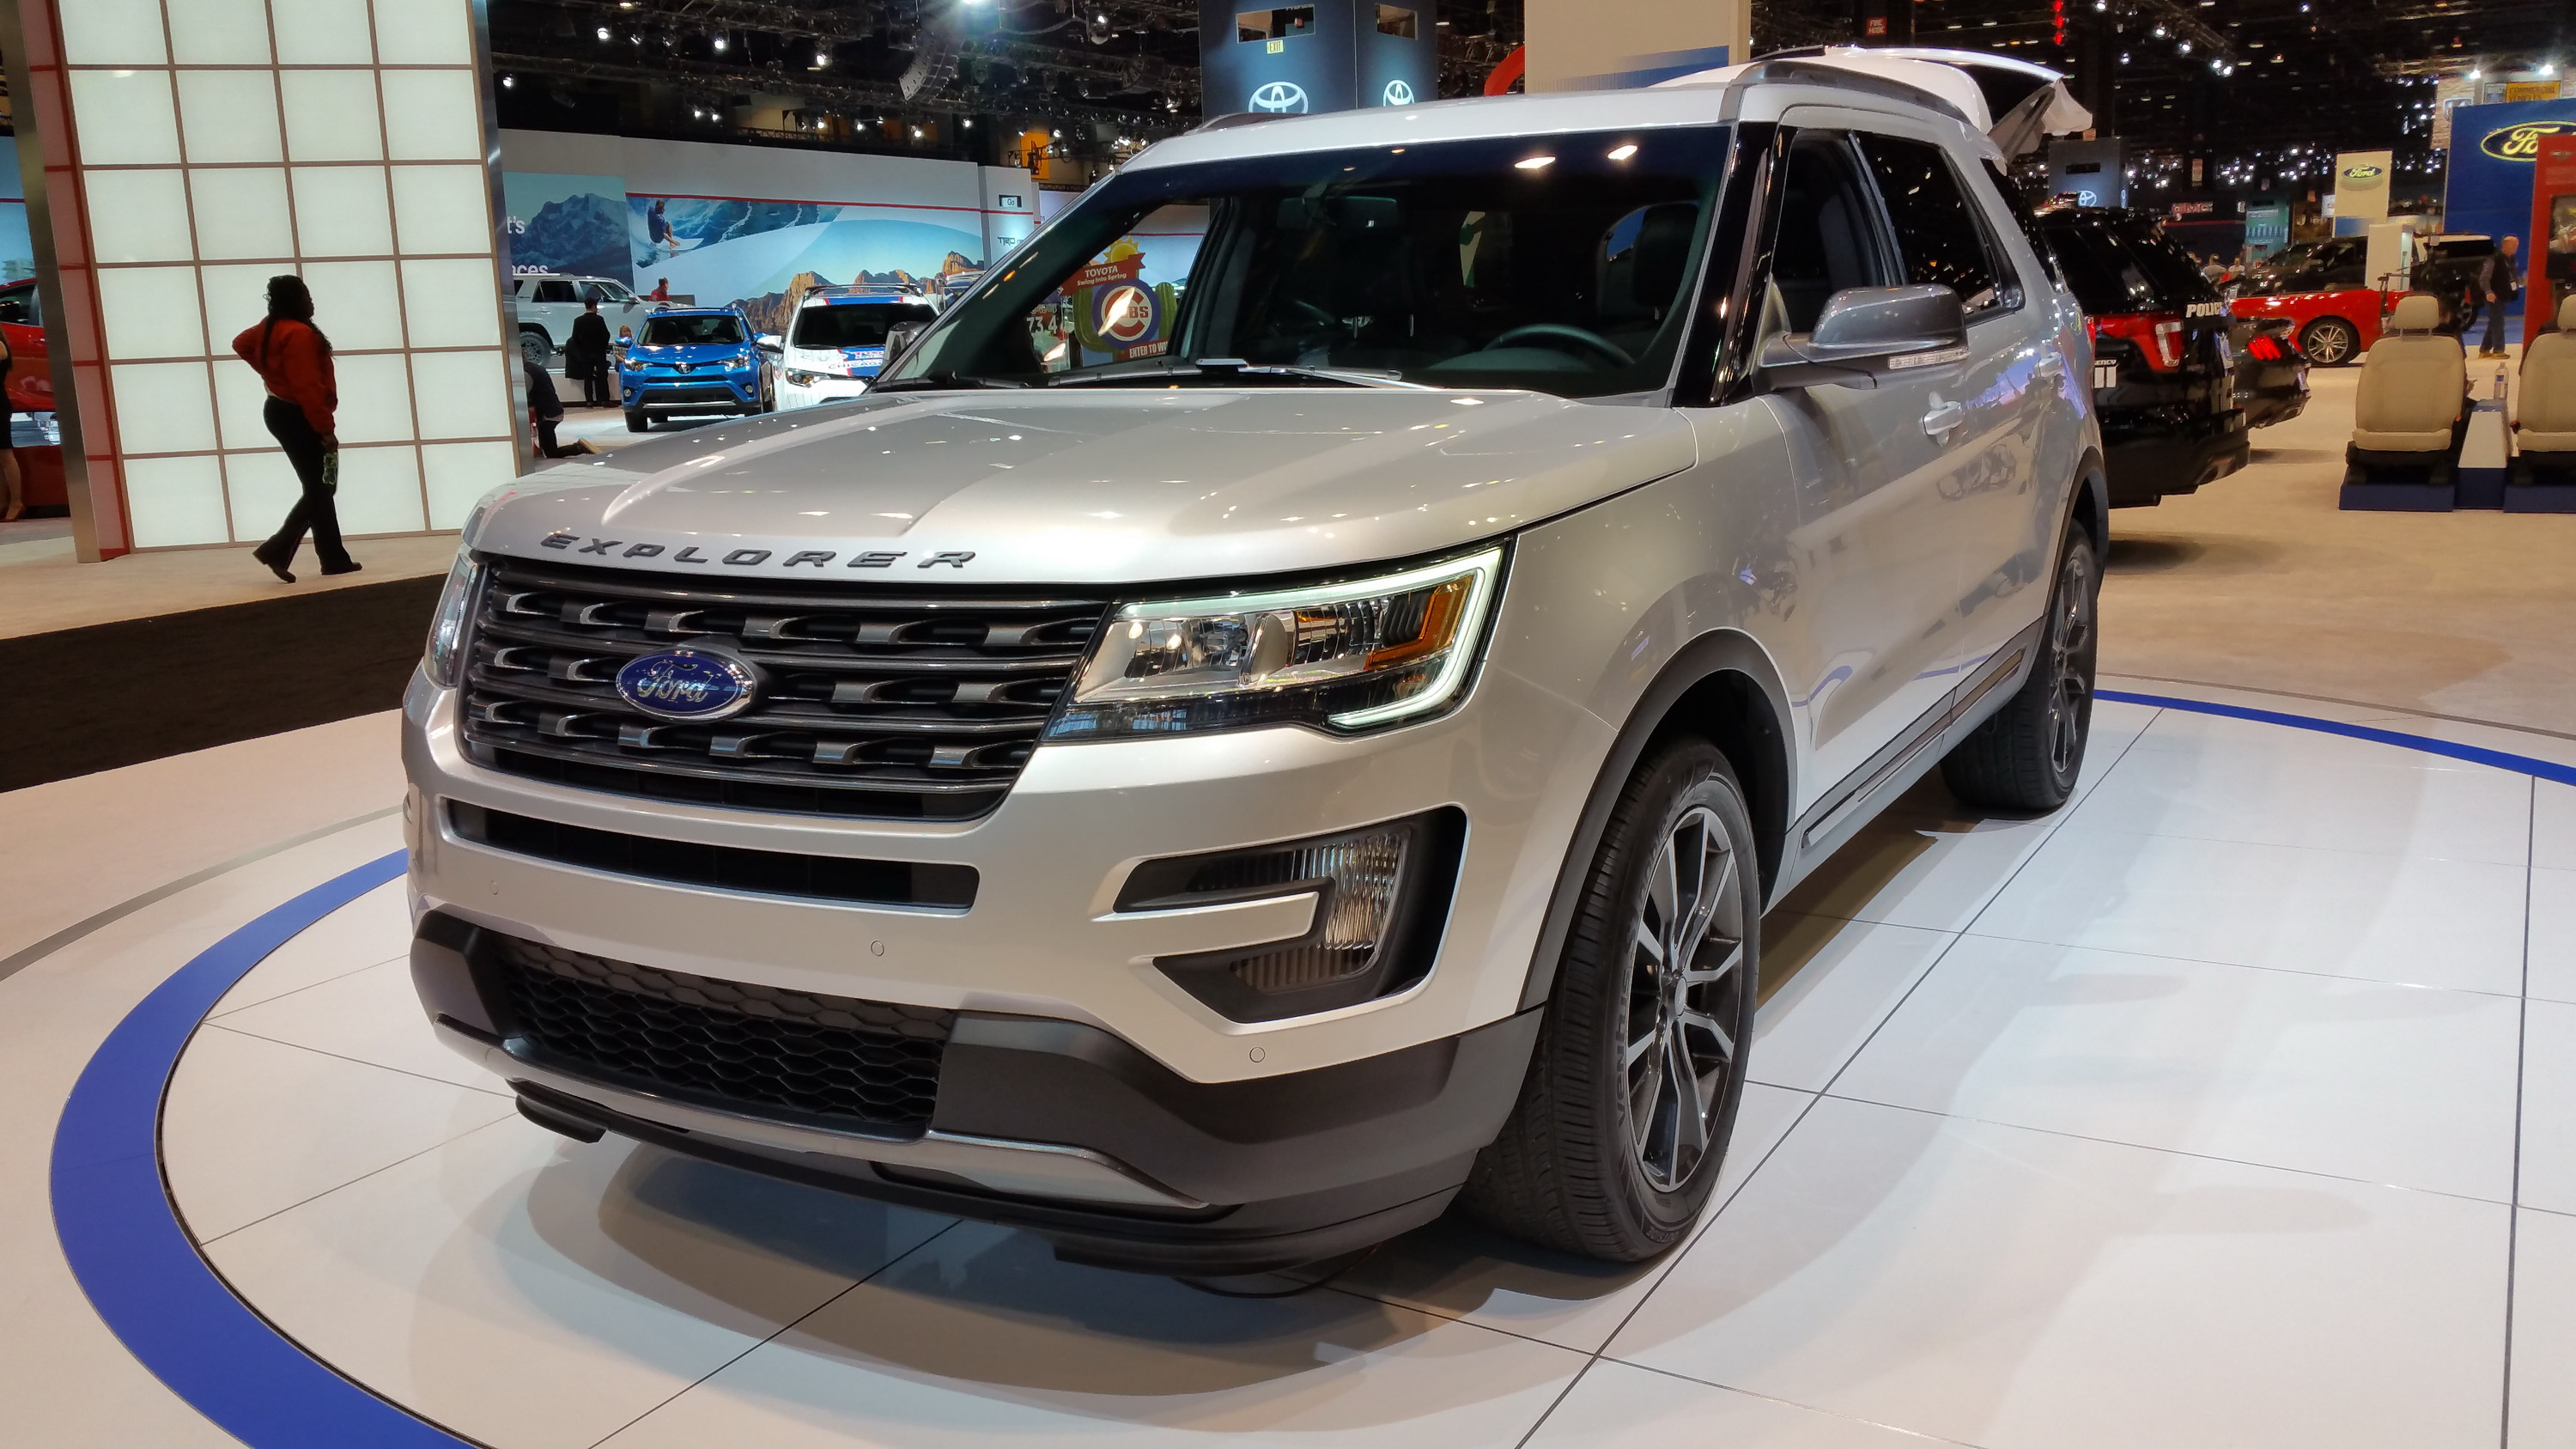 2017 ford explorer xlt sport appearance package gallery 665413 top speed. Black Bedroom Furniture Sets. Home Design Ideas